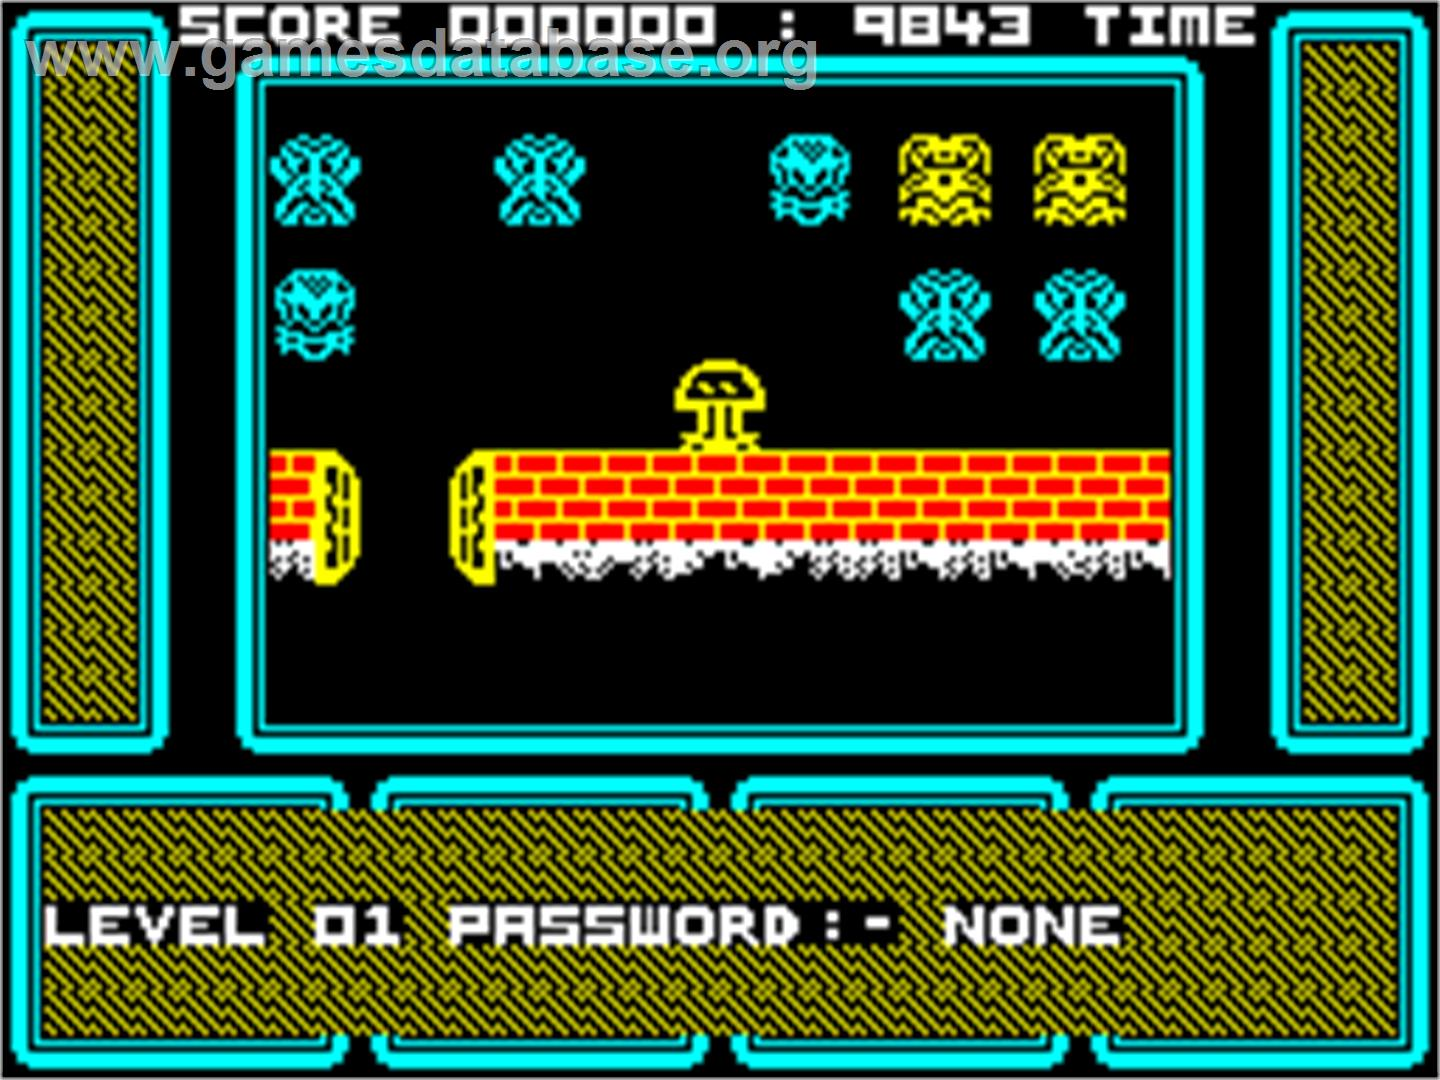 One Man and His Droid - Sinclair ZX Spectrum - Artwork - In Game